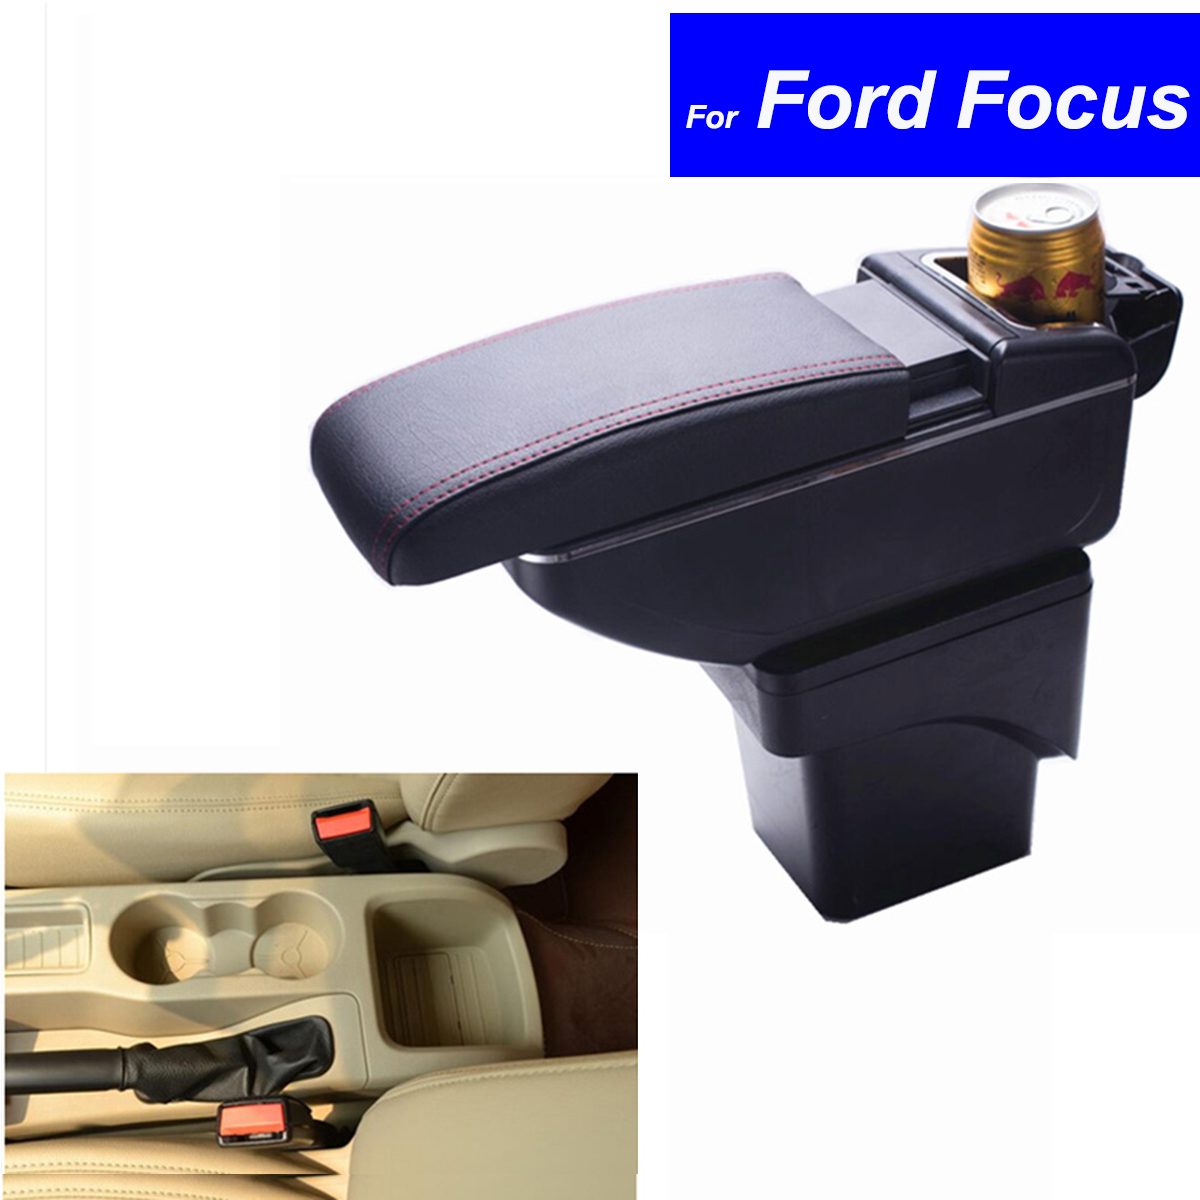 Leather Car Center Console Armrests Storage Box for Ford Focus 2007 2008 2009 2010 2011 2012 2013 2014 Auto Parts Free Shipping for skoda octavia 2009 2010 2011 2012 2013 2014 2015 2016 armrest with usb leather car center console armrests storage box